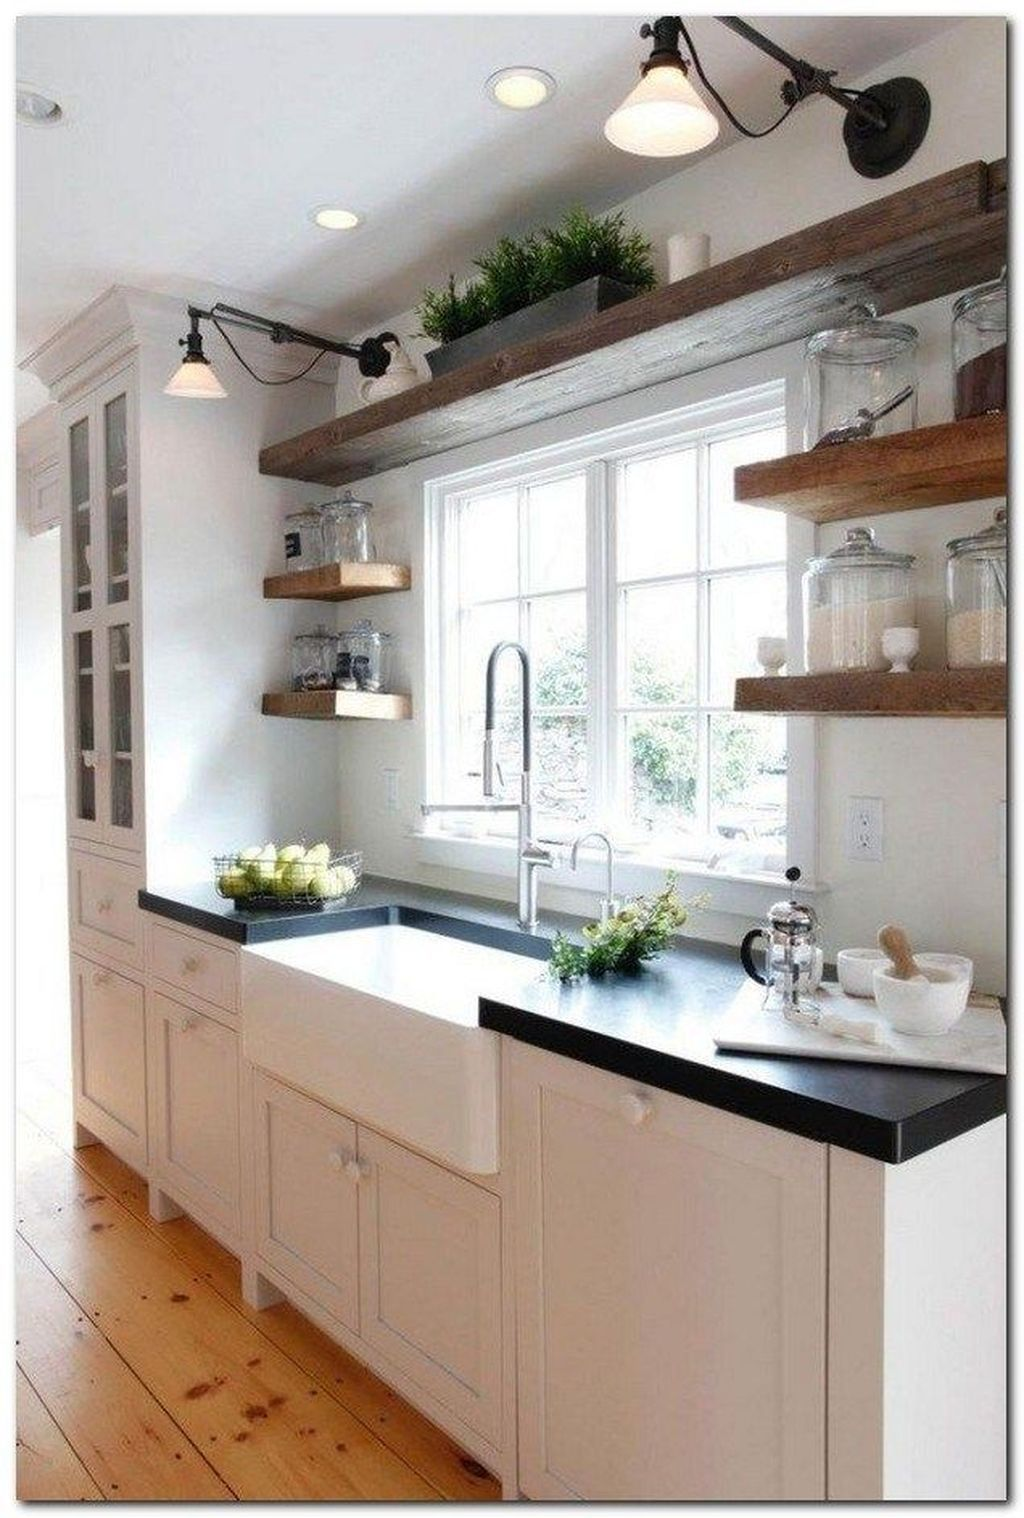 42 Adorable Small Kitchen Remodel Design Ideas On A Budget Kitchen Remodel Small Kitchen Remodel Design Kitchen Layout